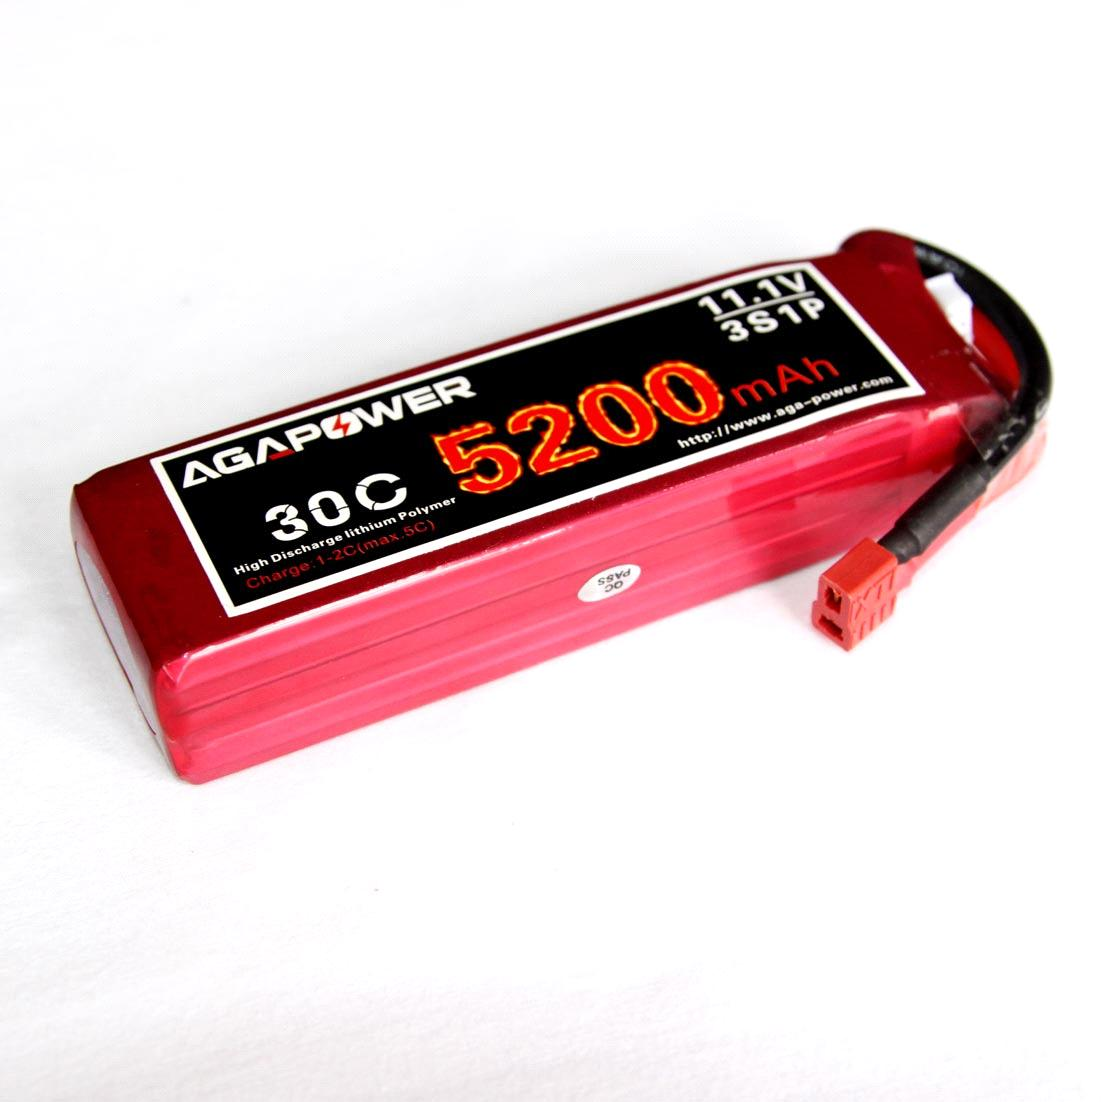 AGA Lipo Battery 11.1V 5200mAh 30C for RC Helis